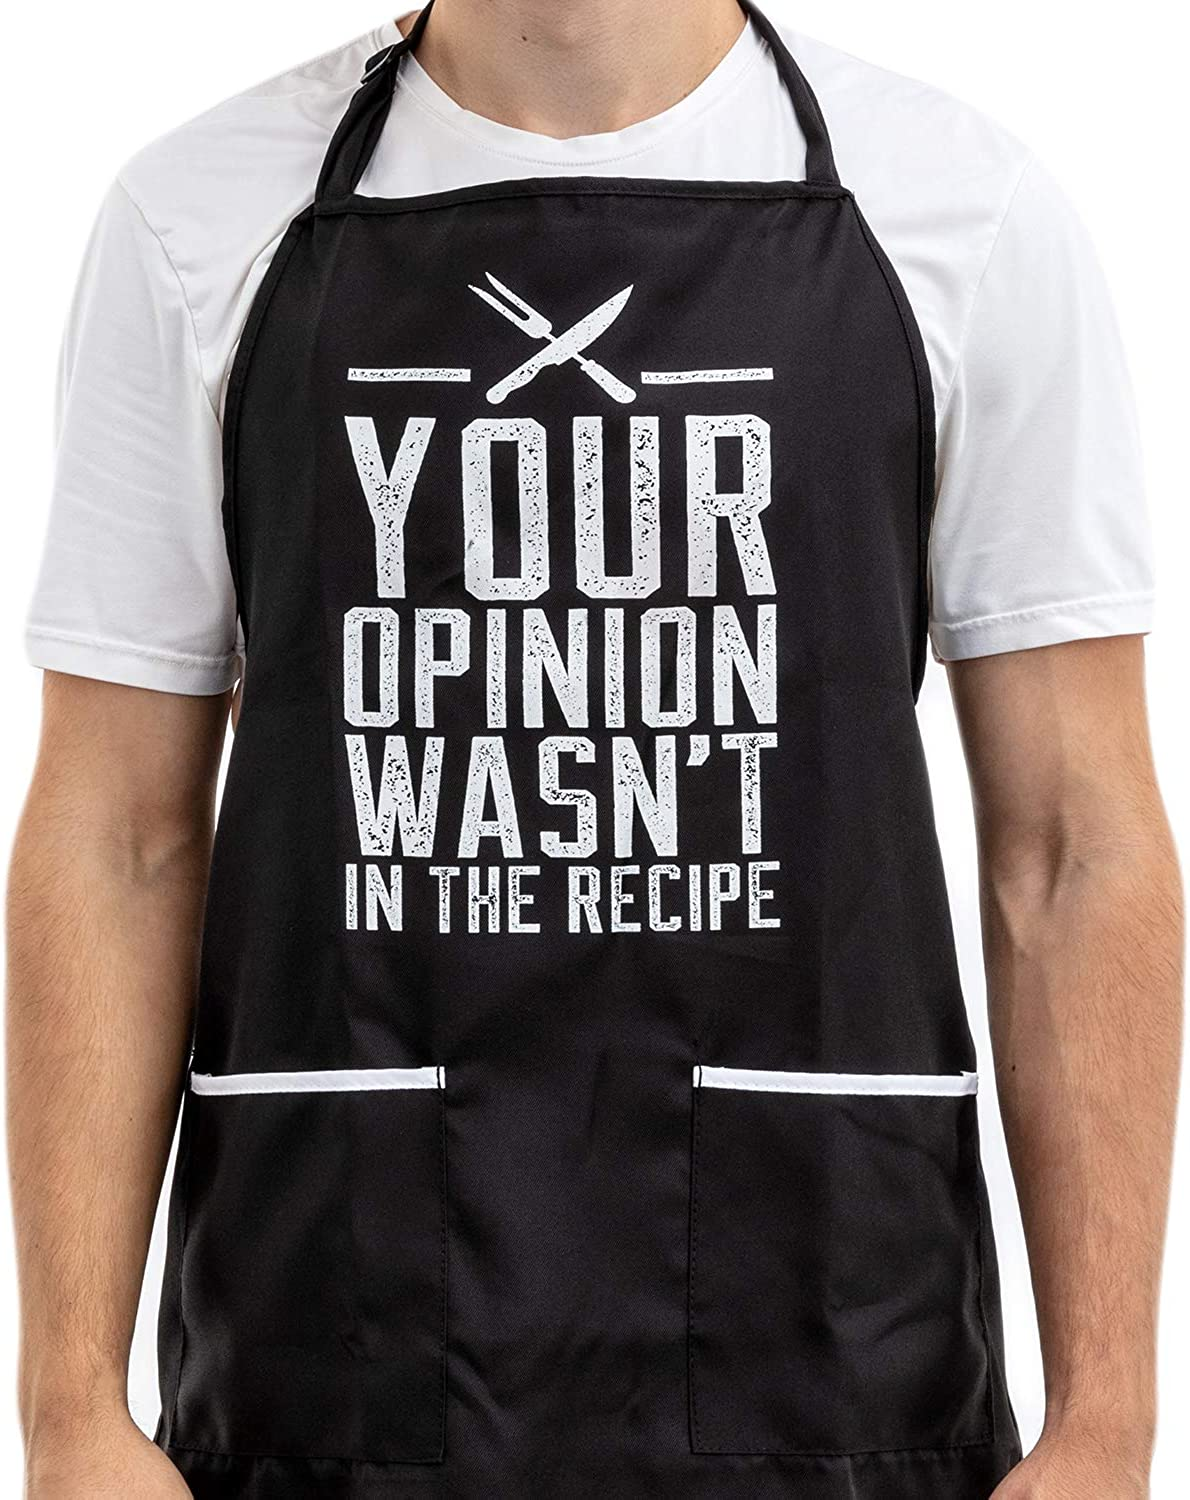 Funny Apron for Women and Men with 2 Large Pockets - Your Opinion Wasn't in the Recipe One-Size-Fits-All Adjustable Cotton/Poly Chef Apron for Grilling, Cooking, BBQ - Fits Grill Accessories, Phone